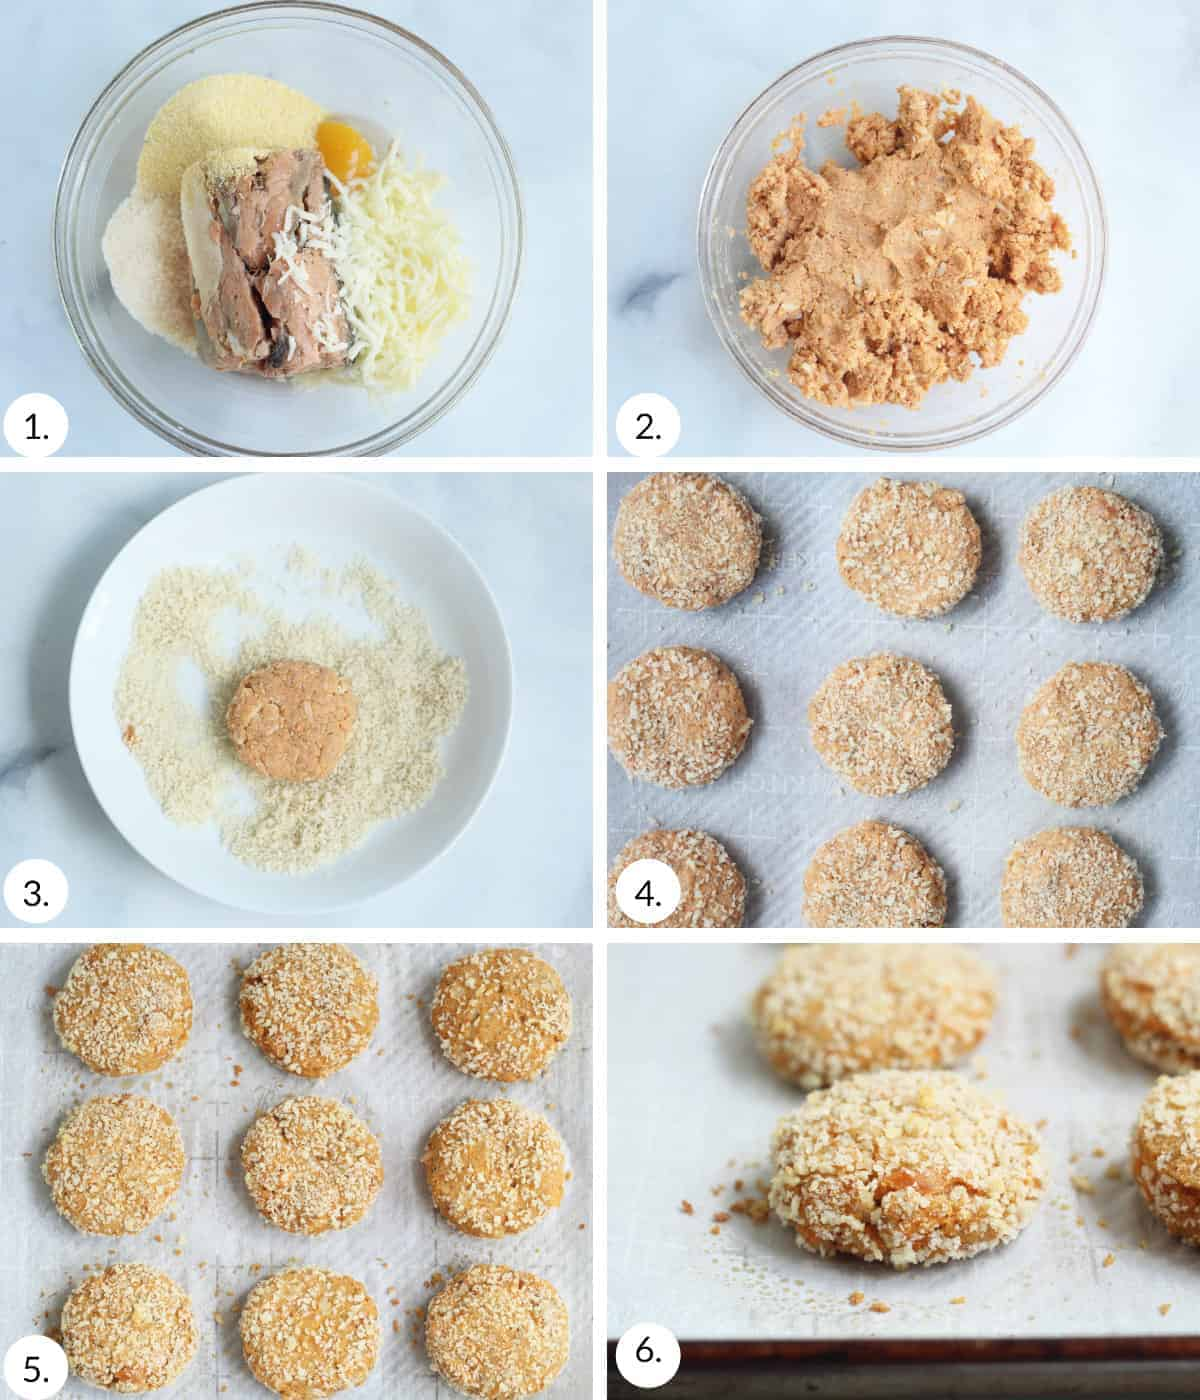 how to make salmon patties step by step process